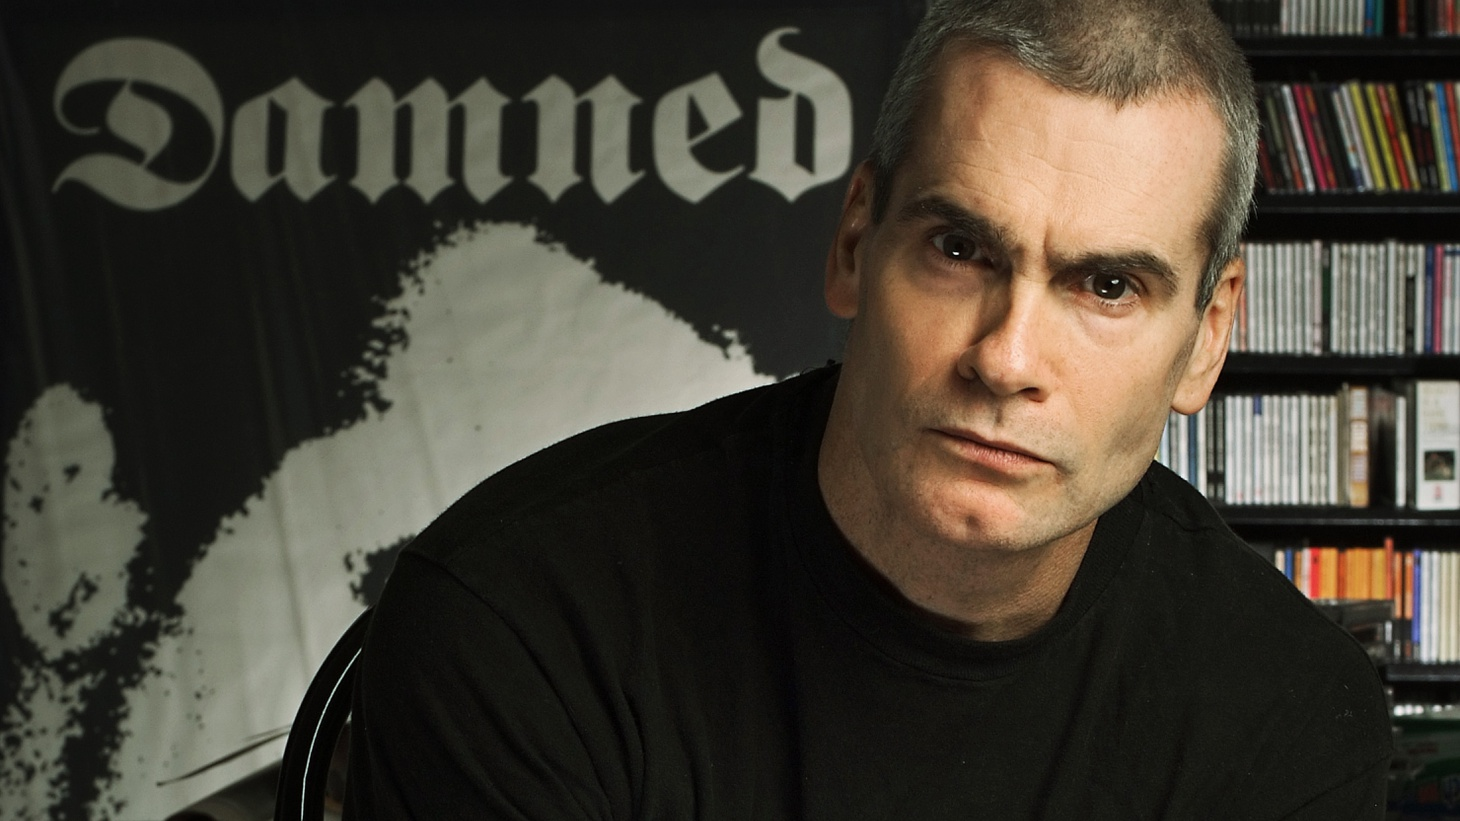 Henry Rollins worked tirelessly to bring you a completely artful and original program dedicated to the KCRW Pledge Drive, putting the fun, in fundraising. Don't miss this 2 hours of rollicking good times between Henry, Engineer X, Will Bentley and with the support of an at times guffawing, Anne Litt.